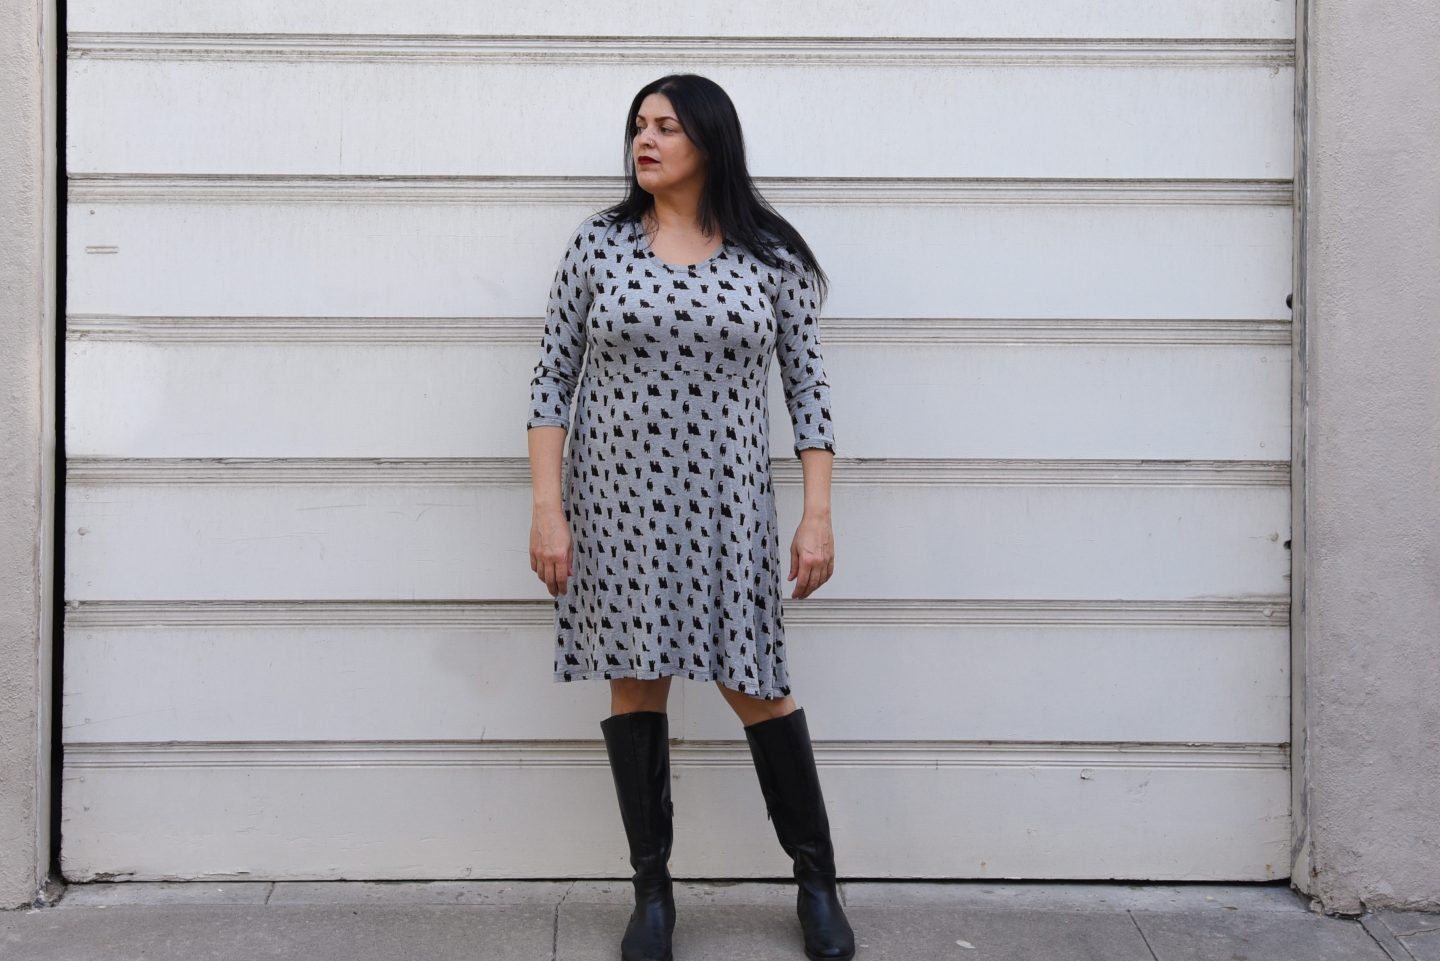 Image of a woman with long black hair and red lipstick facing the camera wearing a black and gray knit empire-waist dress with black kitty print standing in front of a white garage door.